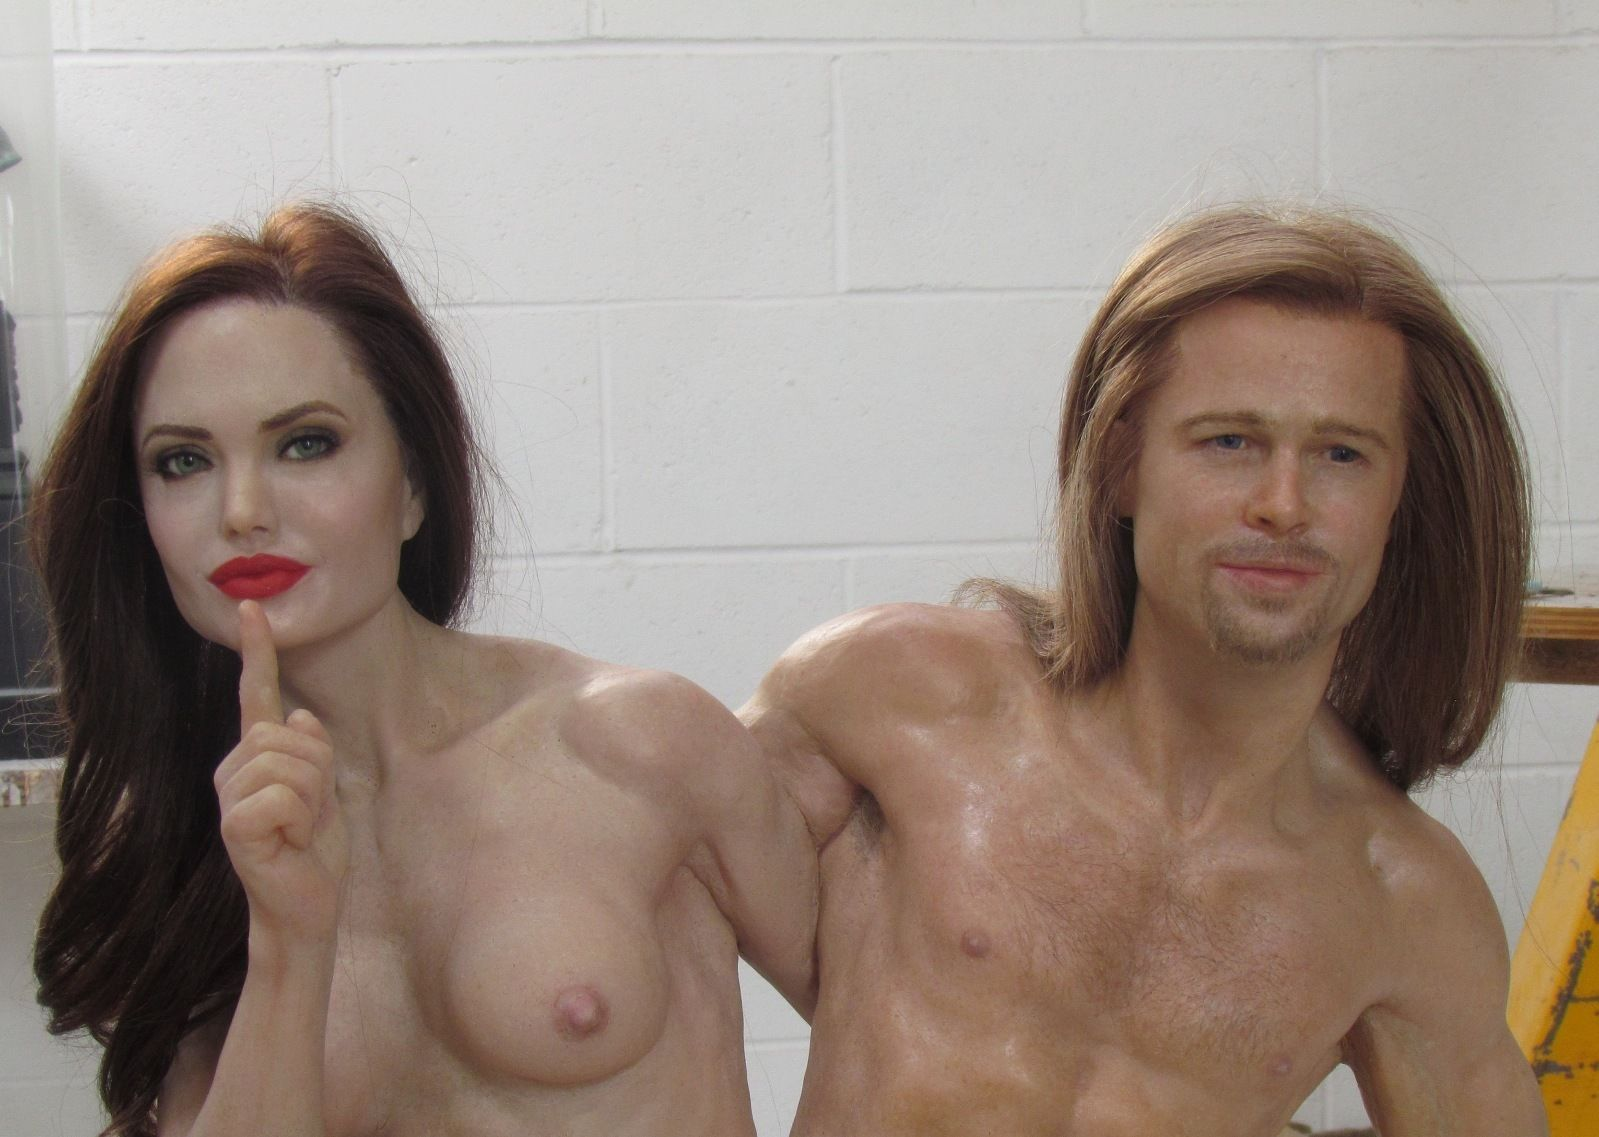 Angelina Jolie Real Nude Pics you can buy a graphic nude statue of angelina jolie and brad